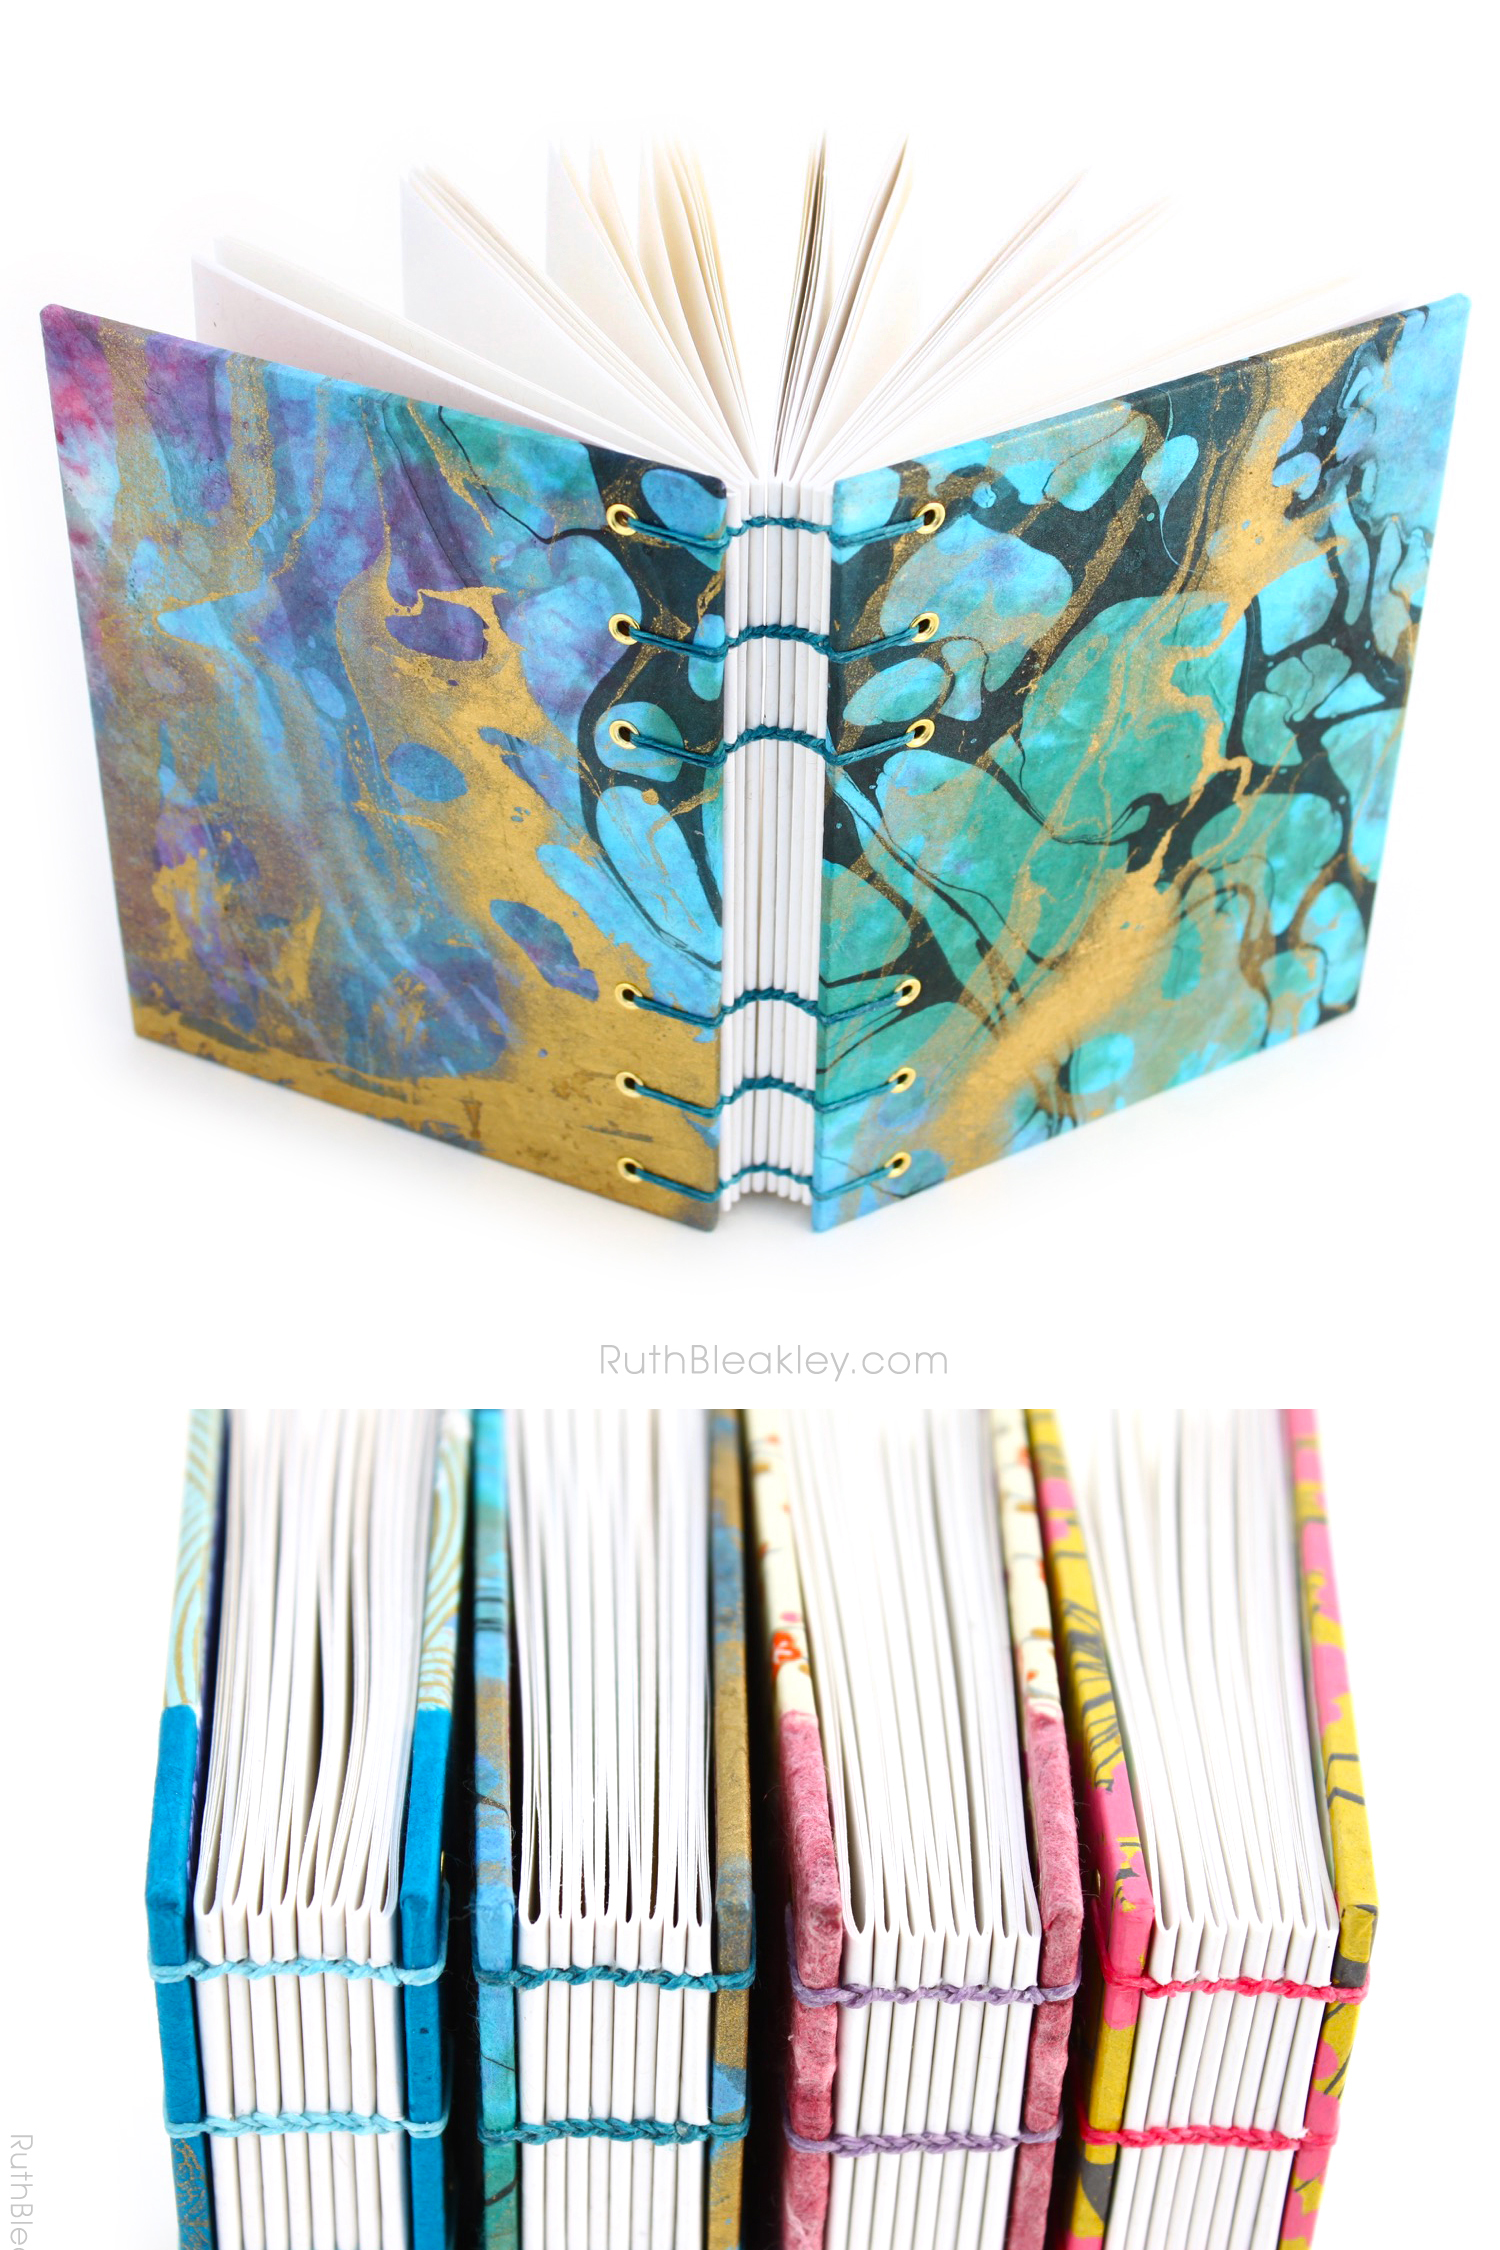 Marbleized Journal handmade by Ruth Bleakley from Marbled Paper - blue and gold